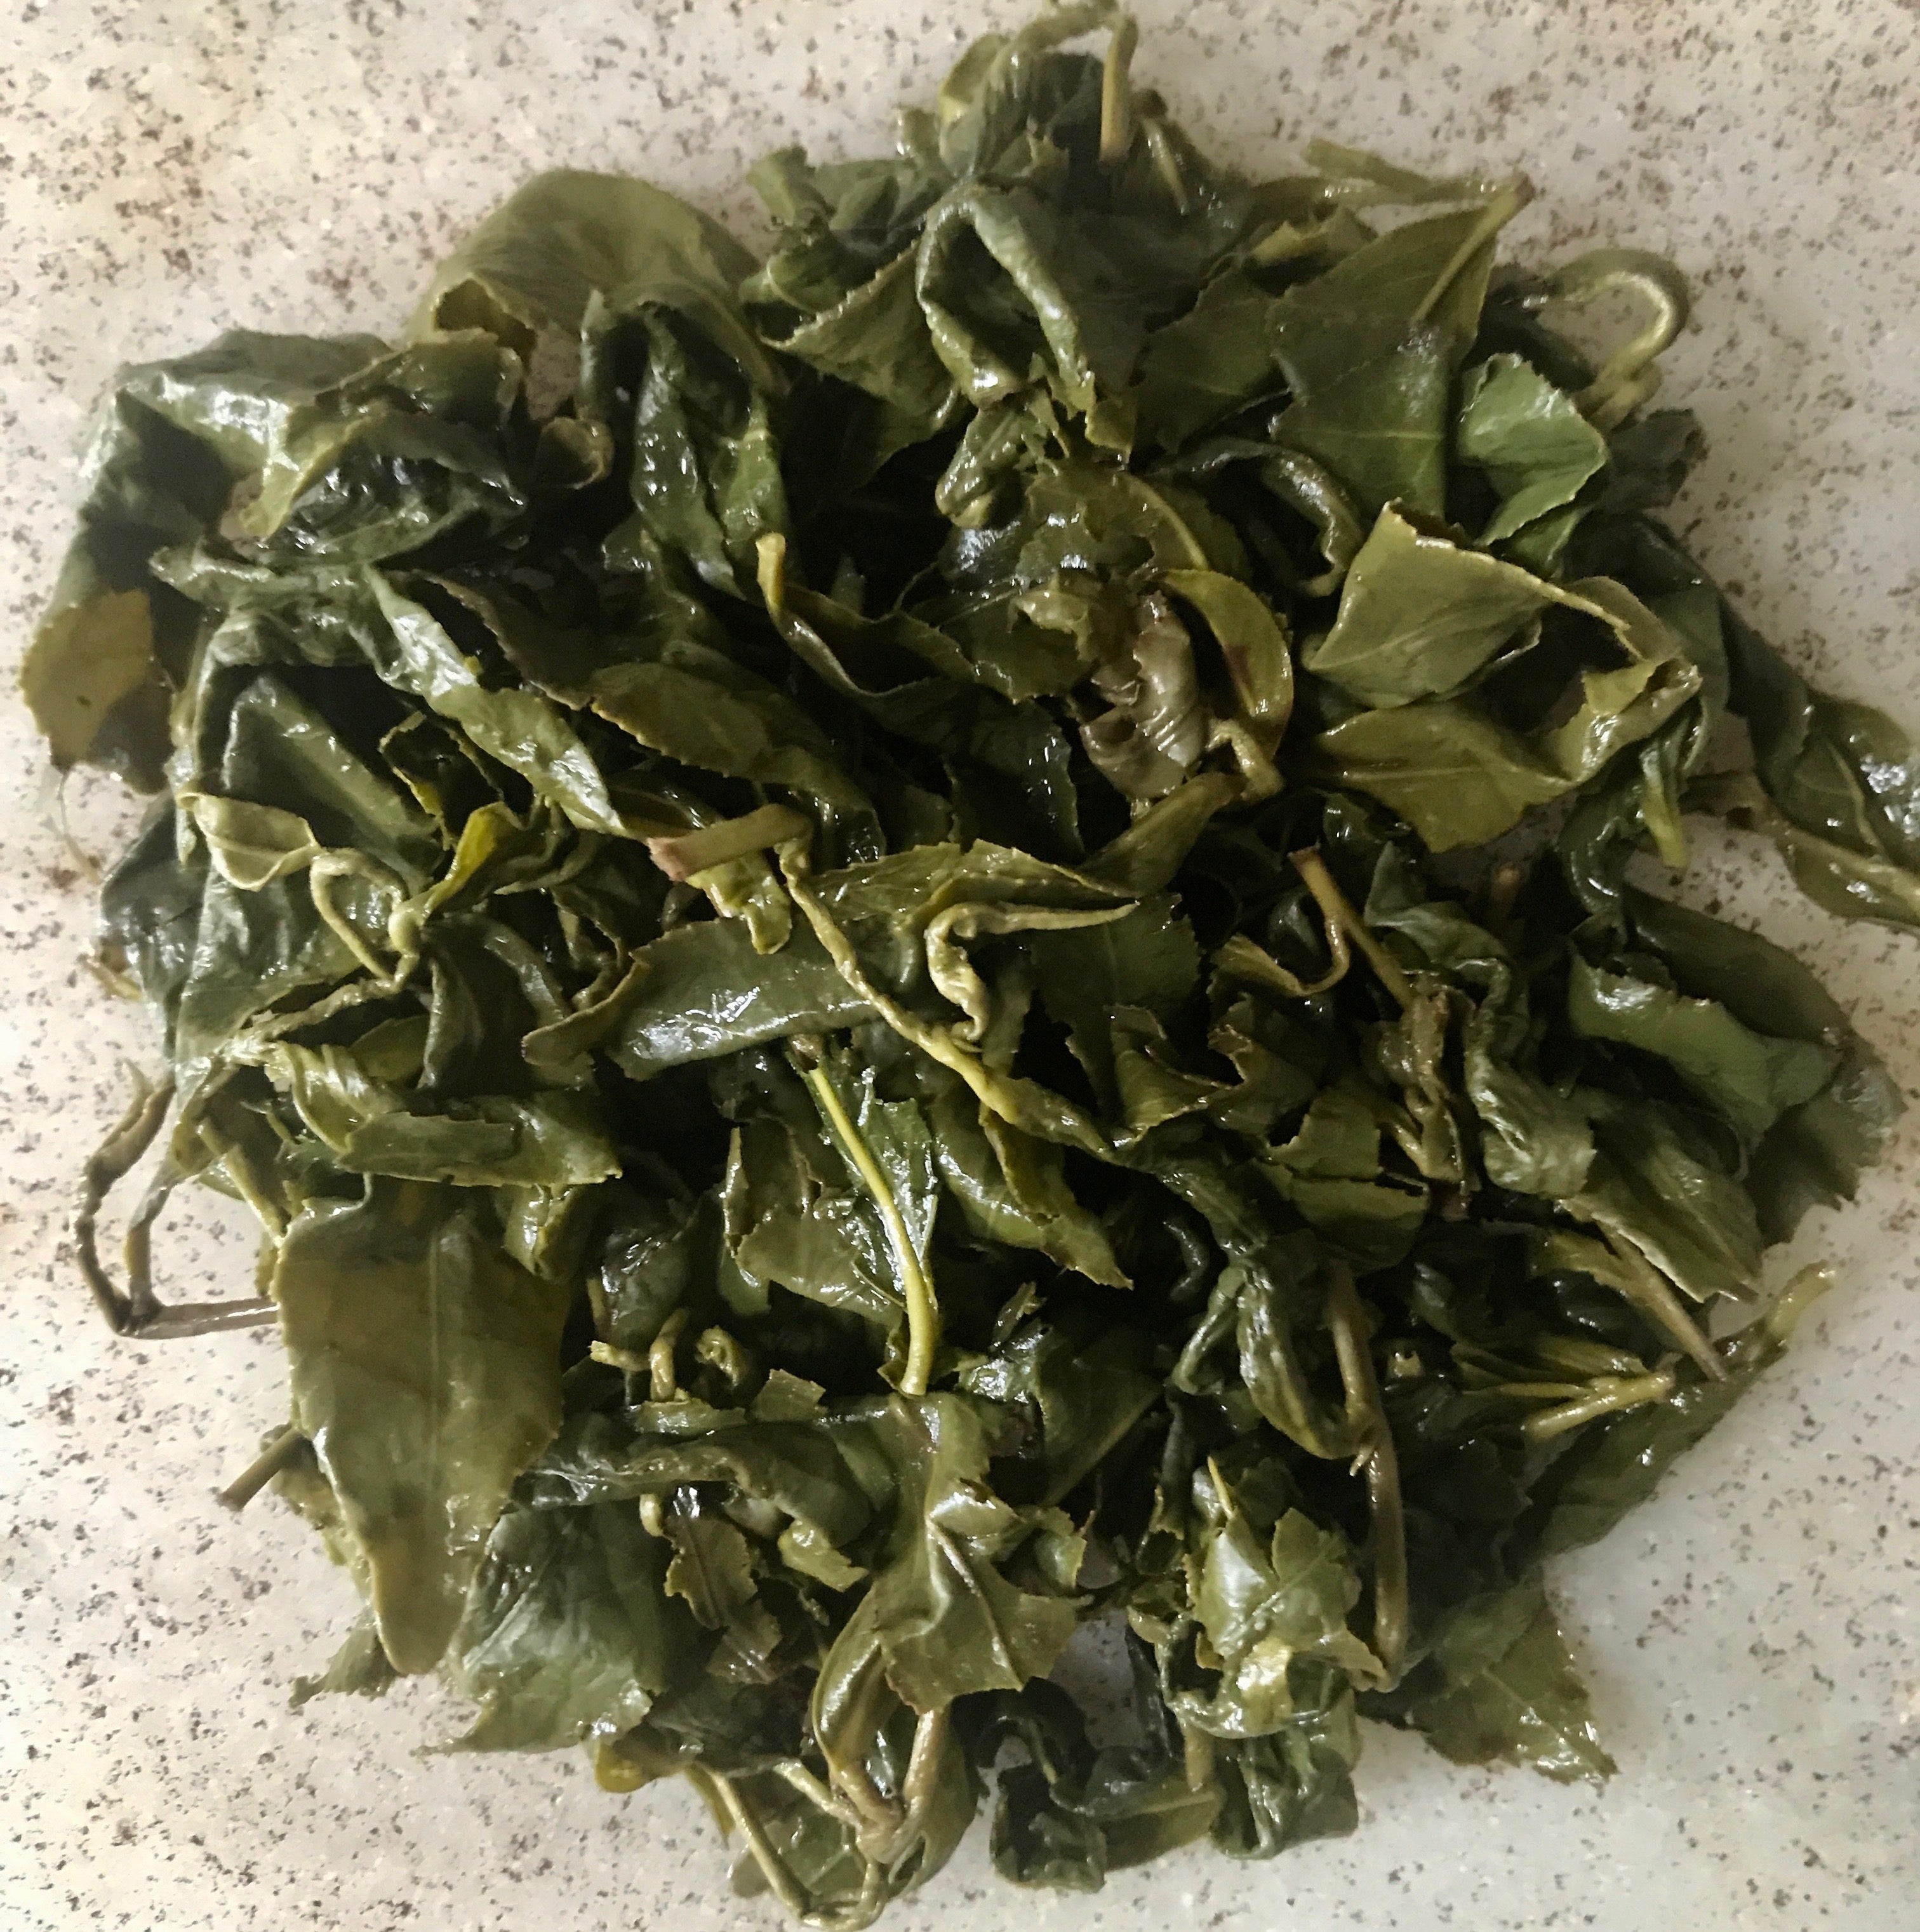 Eco-Cha Tea Club Light Roast Phoenix Village Oolong - brewed tea leaves